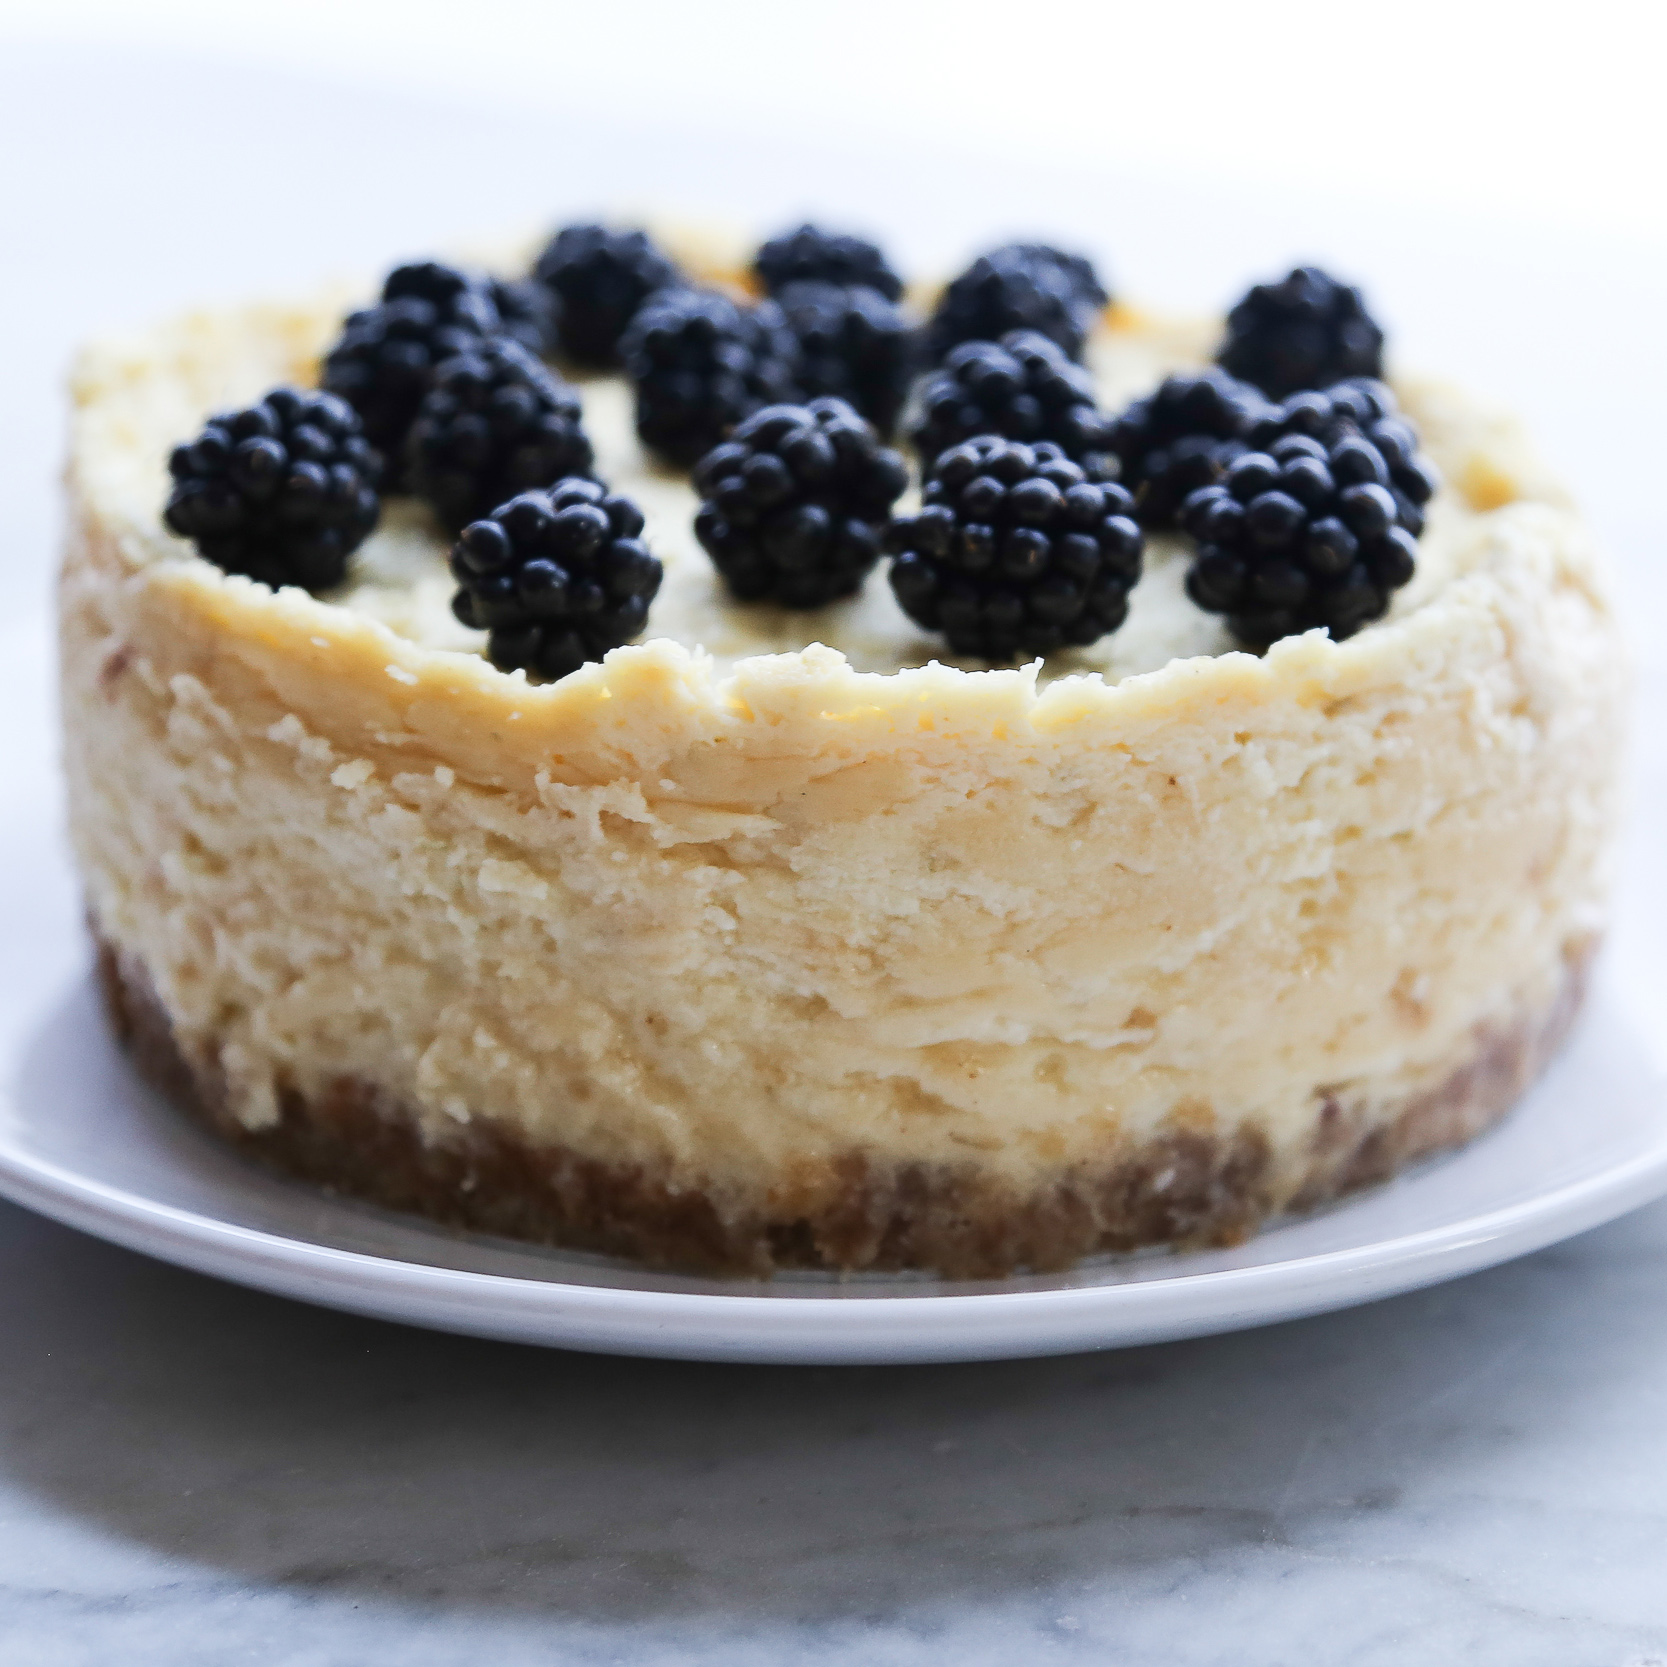 Instant Pot Cheesecake topped with blackberries